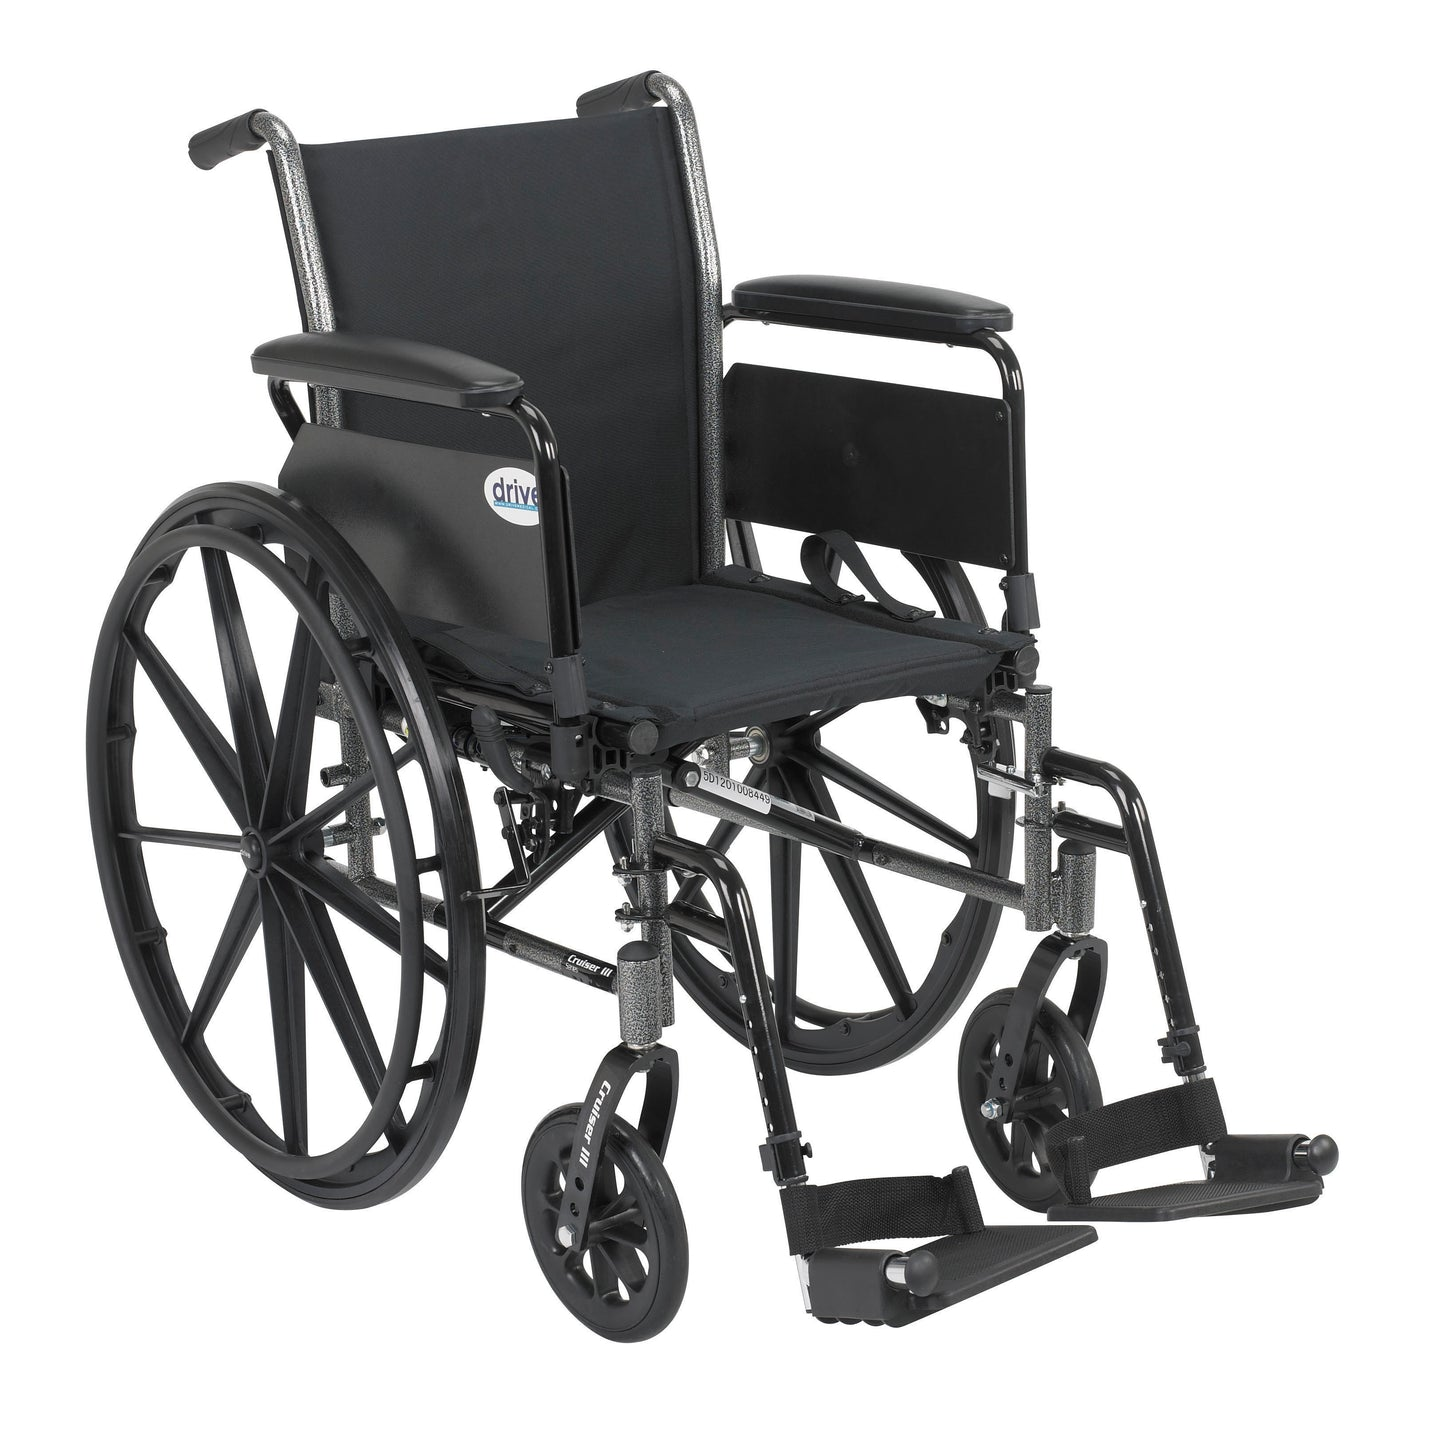 Drive Cruiser III Light Weight Wheelchair with Flip Back Removable Arms- Full Arms- Swing away Footrests- 20